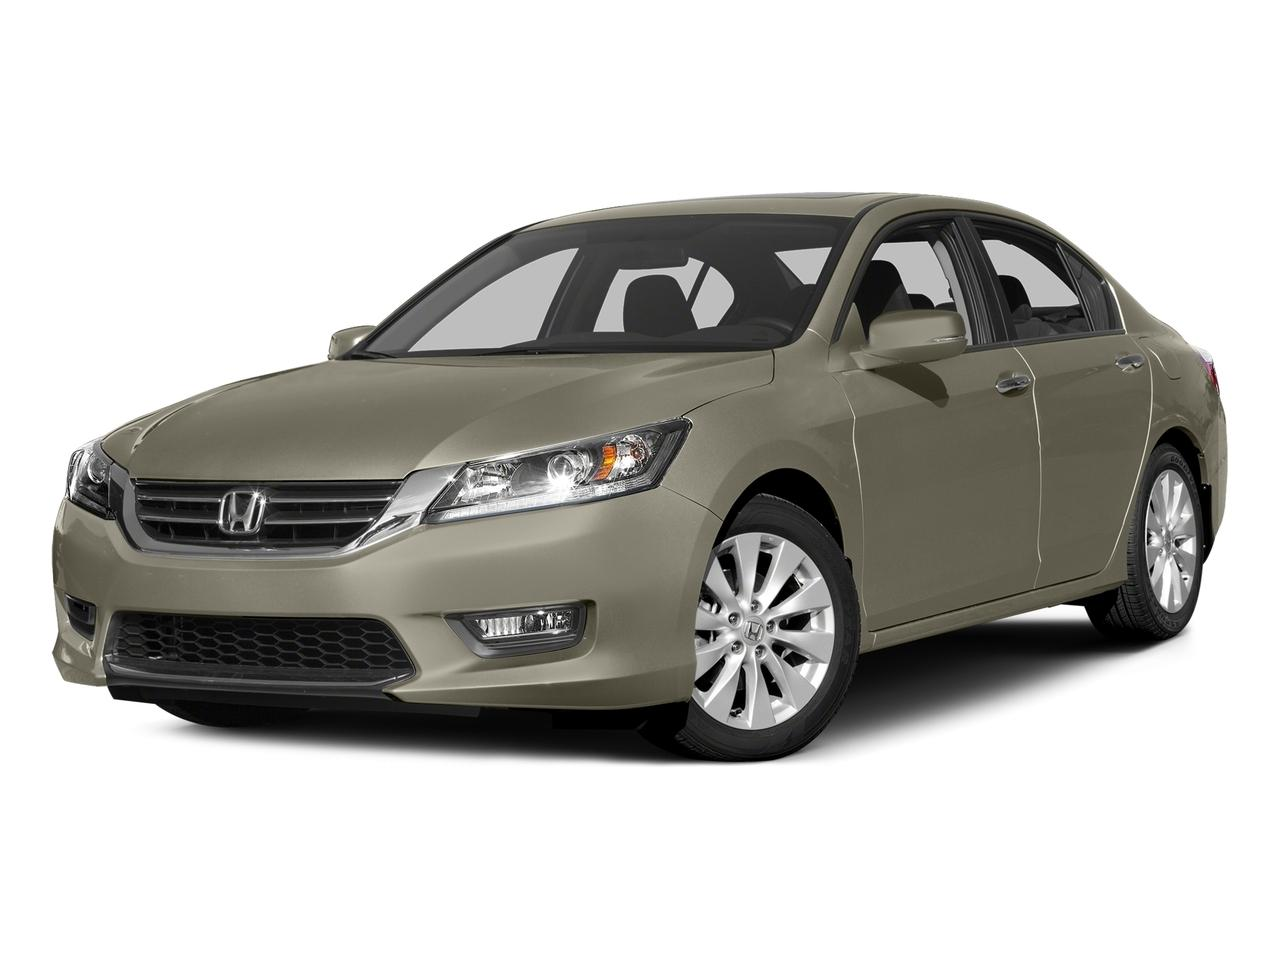 2015 Honda Accord Sedan Vehicle Photo in San Antonio, TX 78238